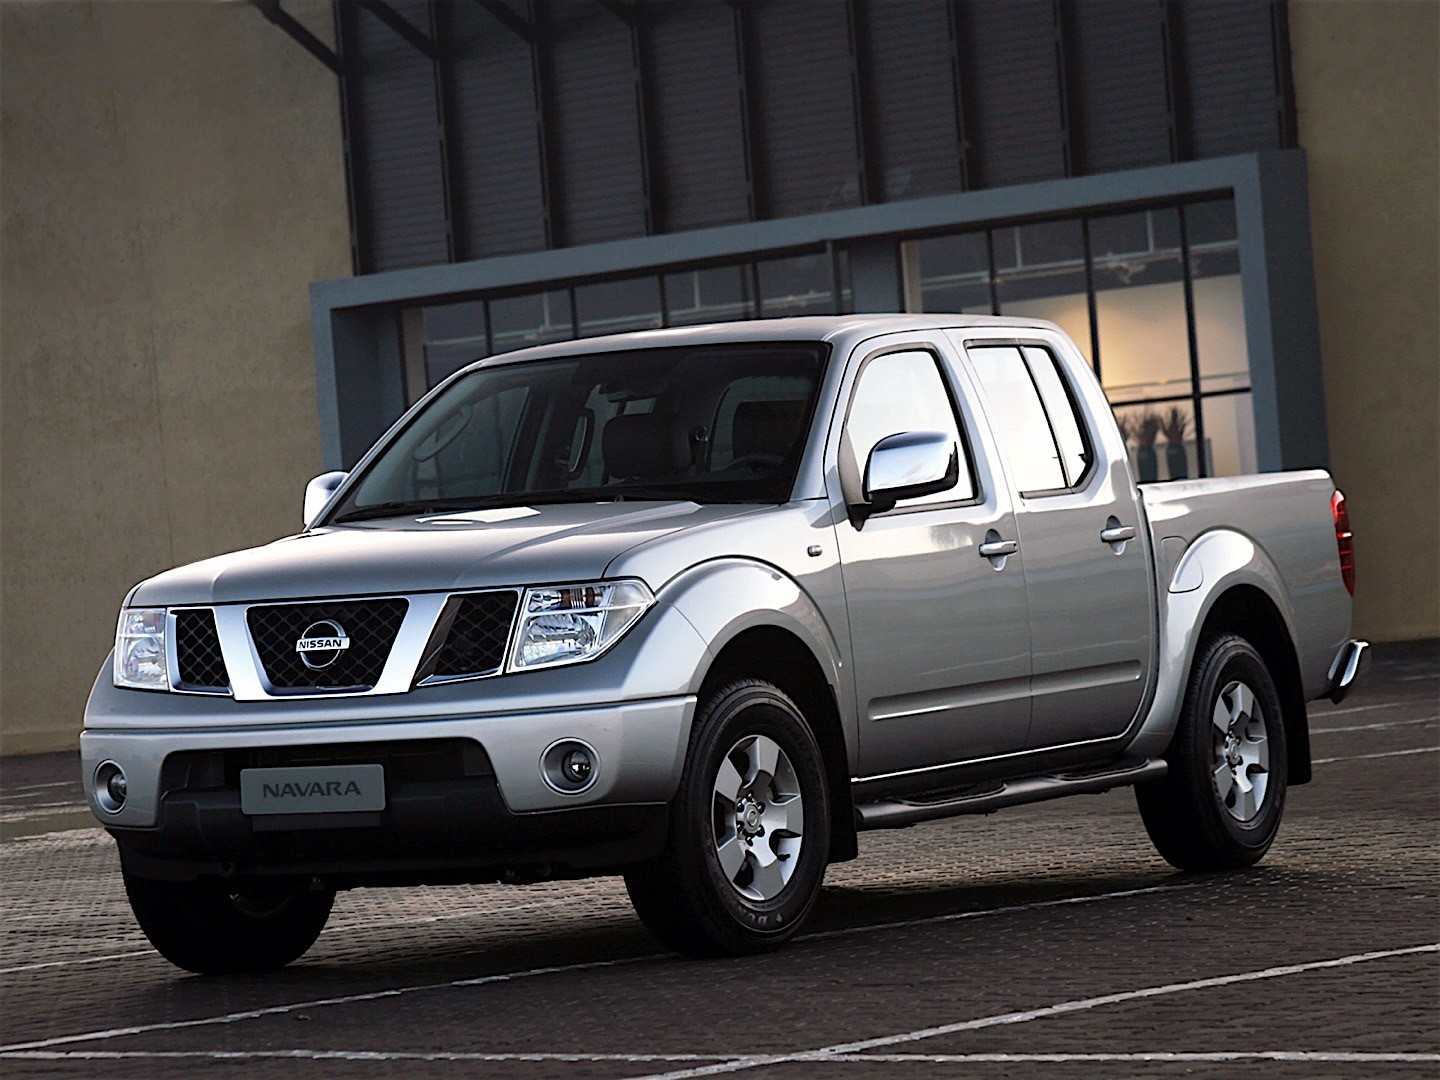 nissan navara frontier double cab 2005 2006 2007 2008 2009 2010 2011 2012 2013 2014. Black Bedroom Furniture Sets. Home Design Ideas